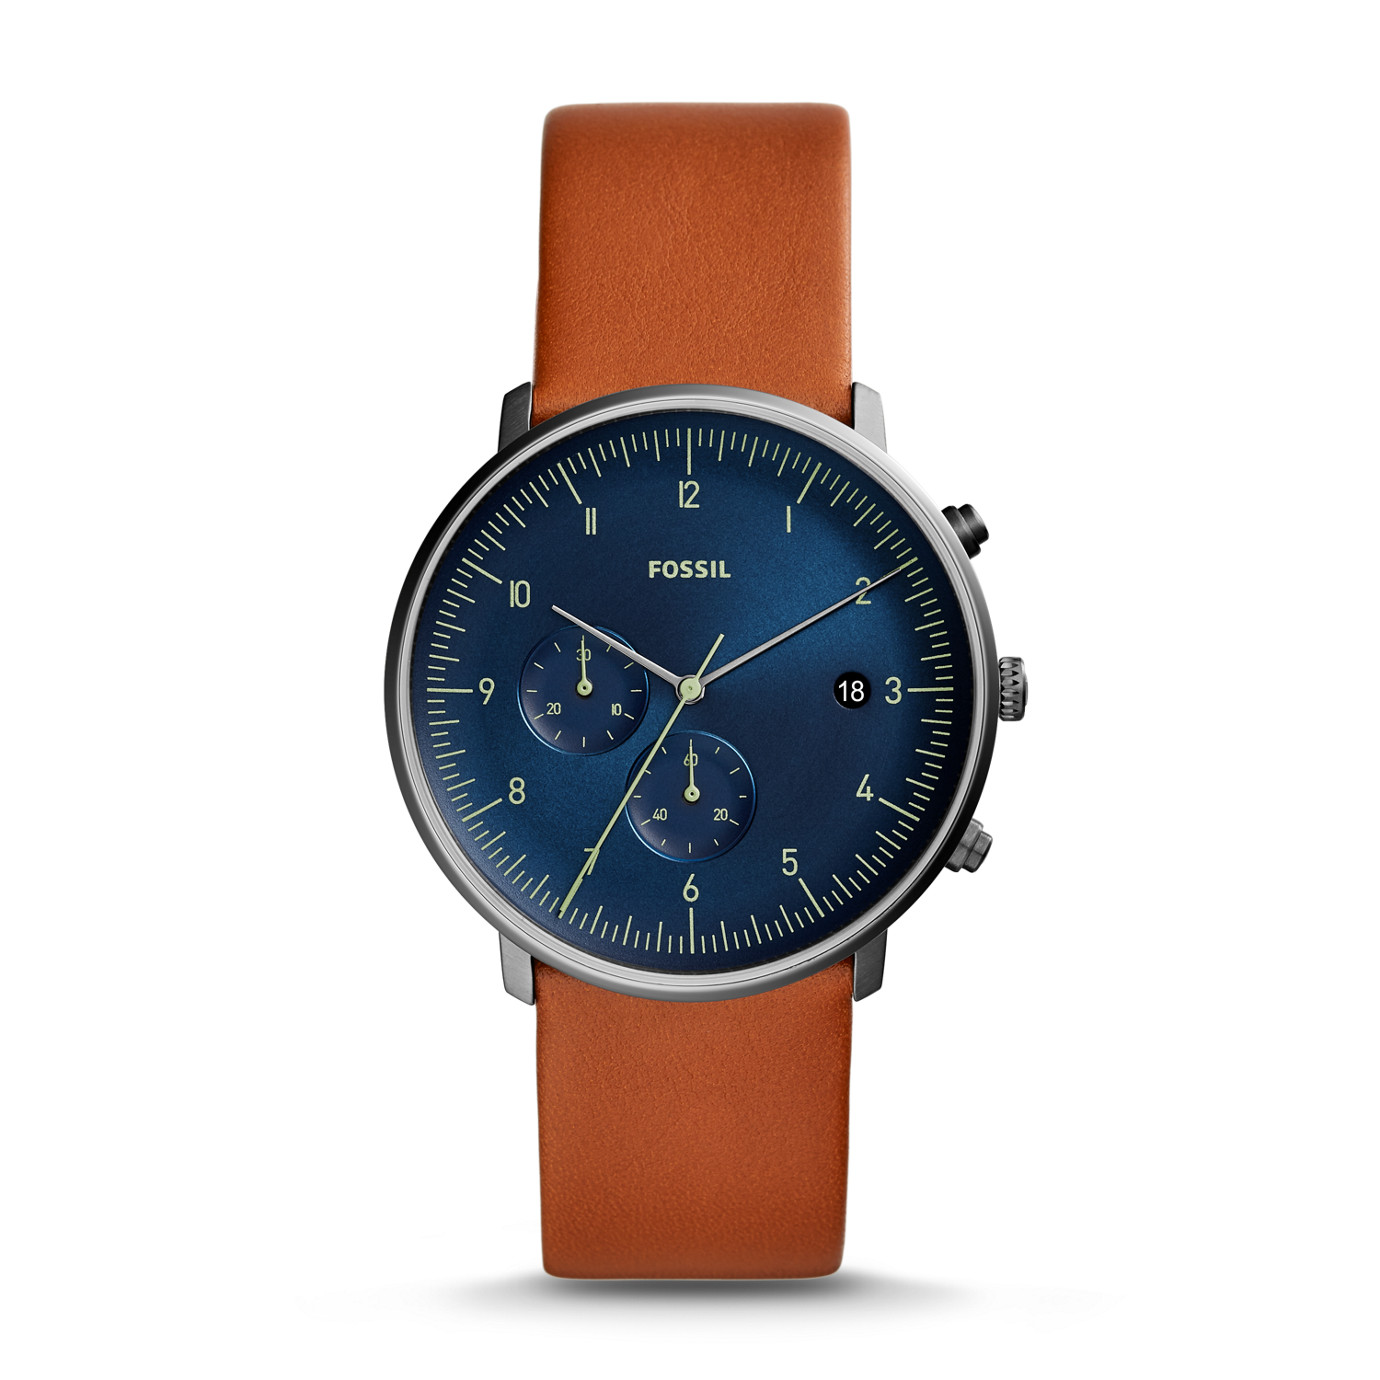 Chase Timer Chronograph Luggage Leather Watch